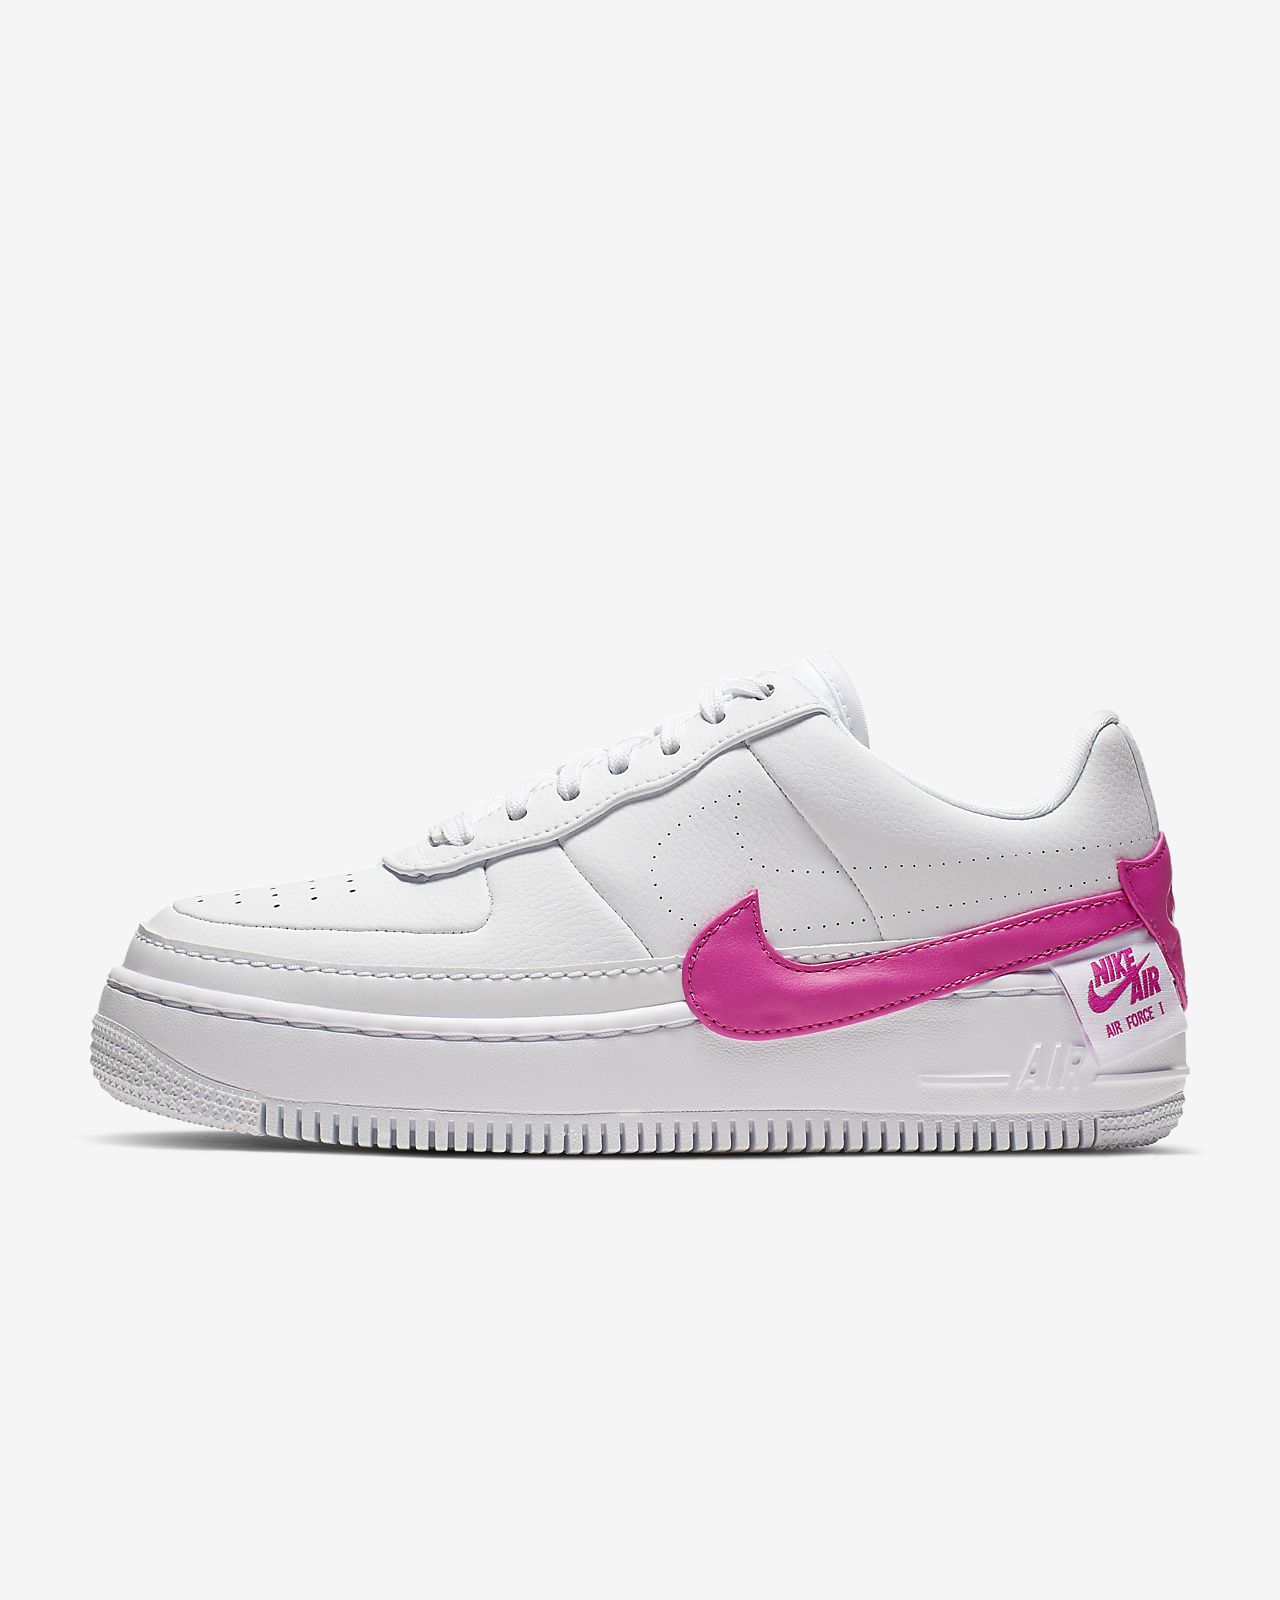 new arrival c86f2 ecd35 ... Nike Air Force 1 Jester XX Shoe